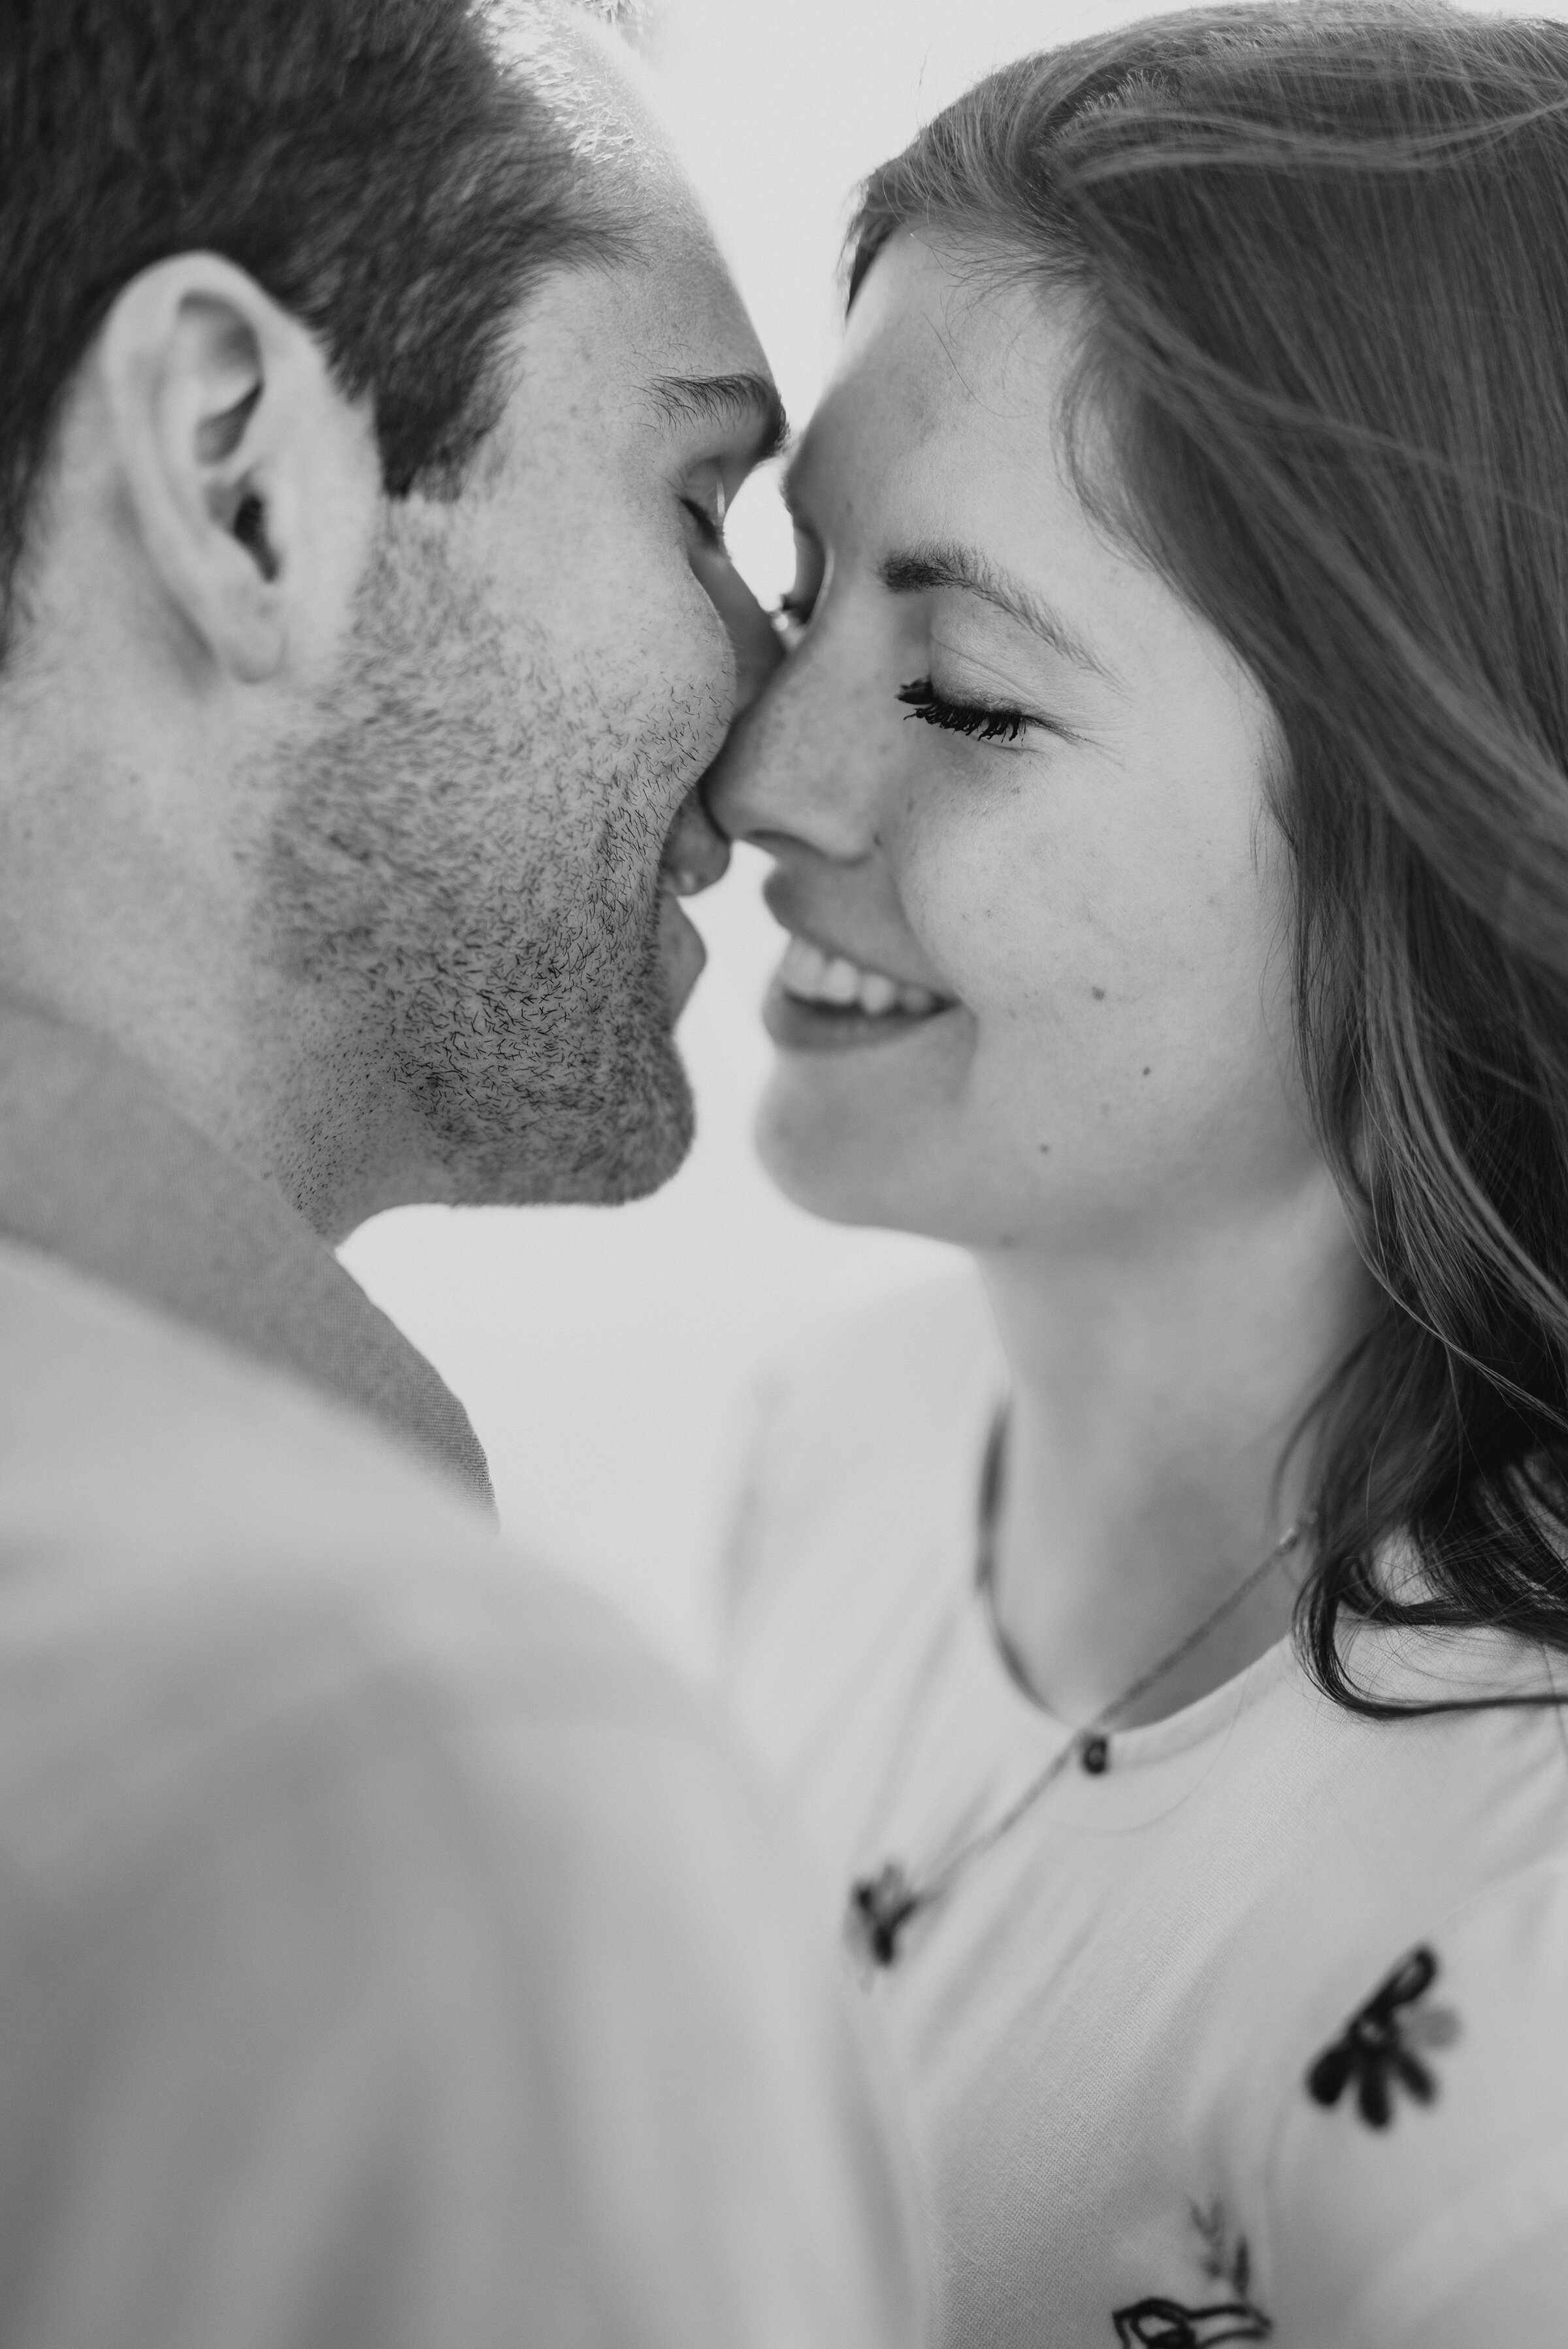 Couple almost kissing in a black and white photo from their engagement session in Magna Utah on the Salt Flats. Black and white photography inspiration utah engagement photoshoot in Magna Utah local photography session locations salt flat photography Kristi Alyse Photography black and white photo inspo utah wedding photographer #makememories #capture #foreverfamilies #engagements #utahphotographer #bestutahweddingphotographer #kissinginatree #magnautah